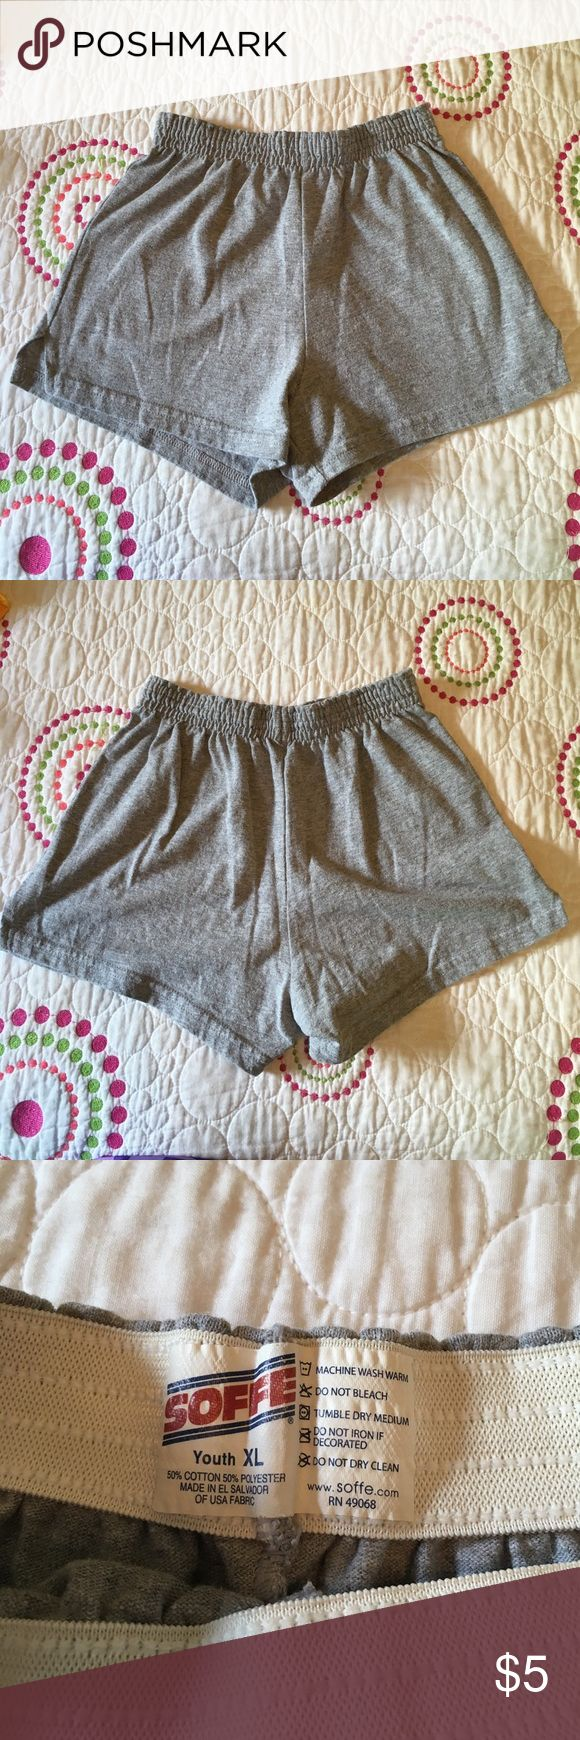 Soffee shorts - Gray // smoke free and pet free home // - perfect lounging shorts for summer! Soffee Bottoms Shorts